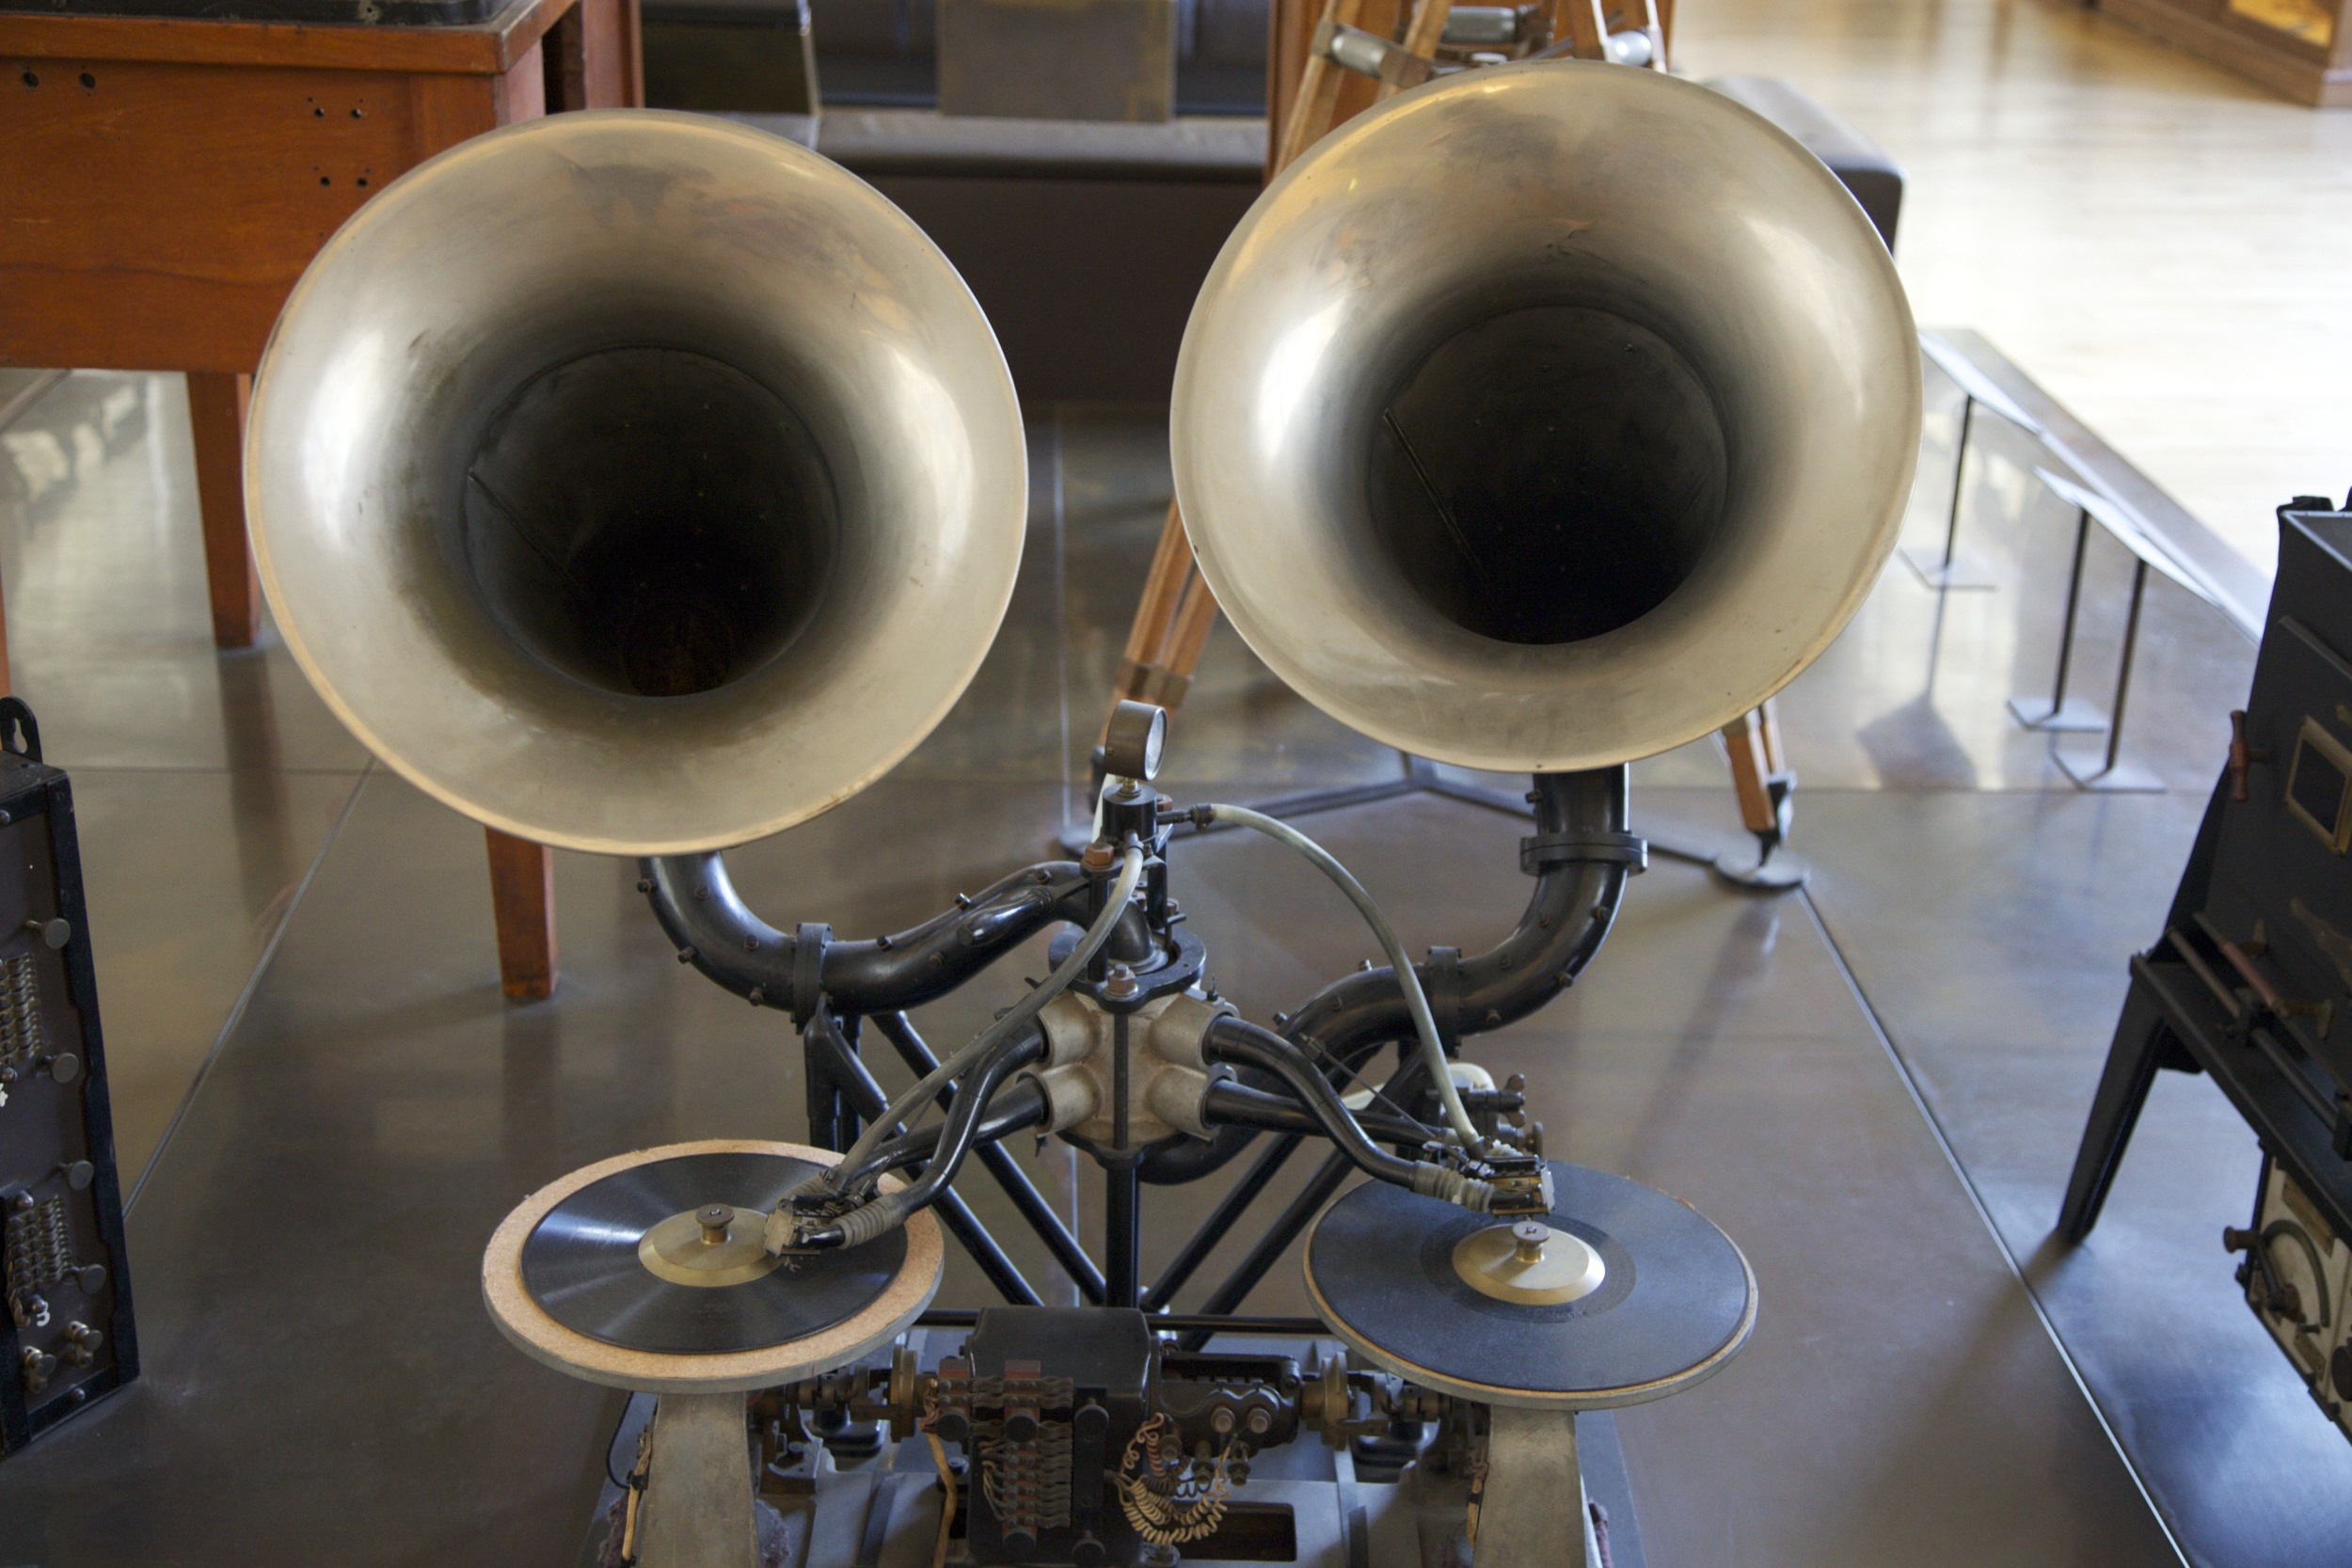 Siamese turntables at the Musée des Arts et Metiers.